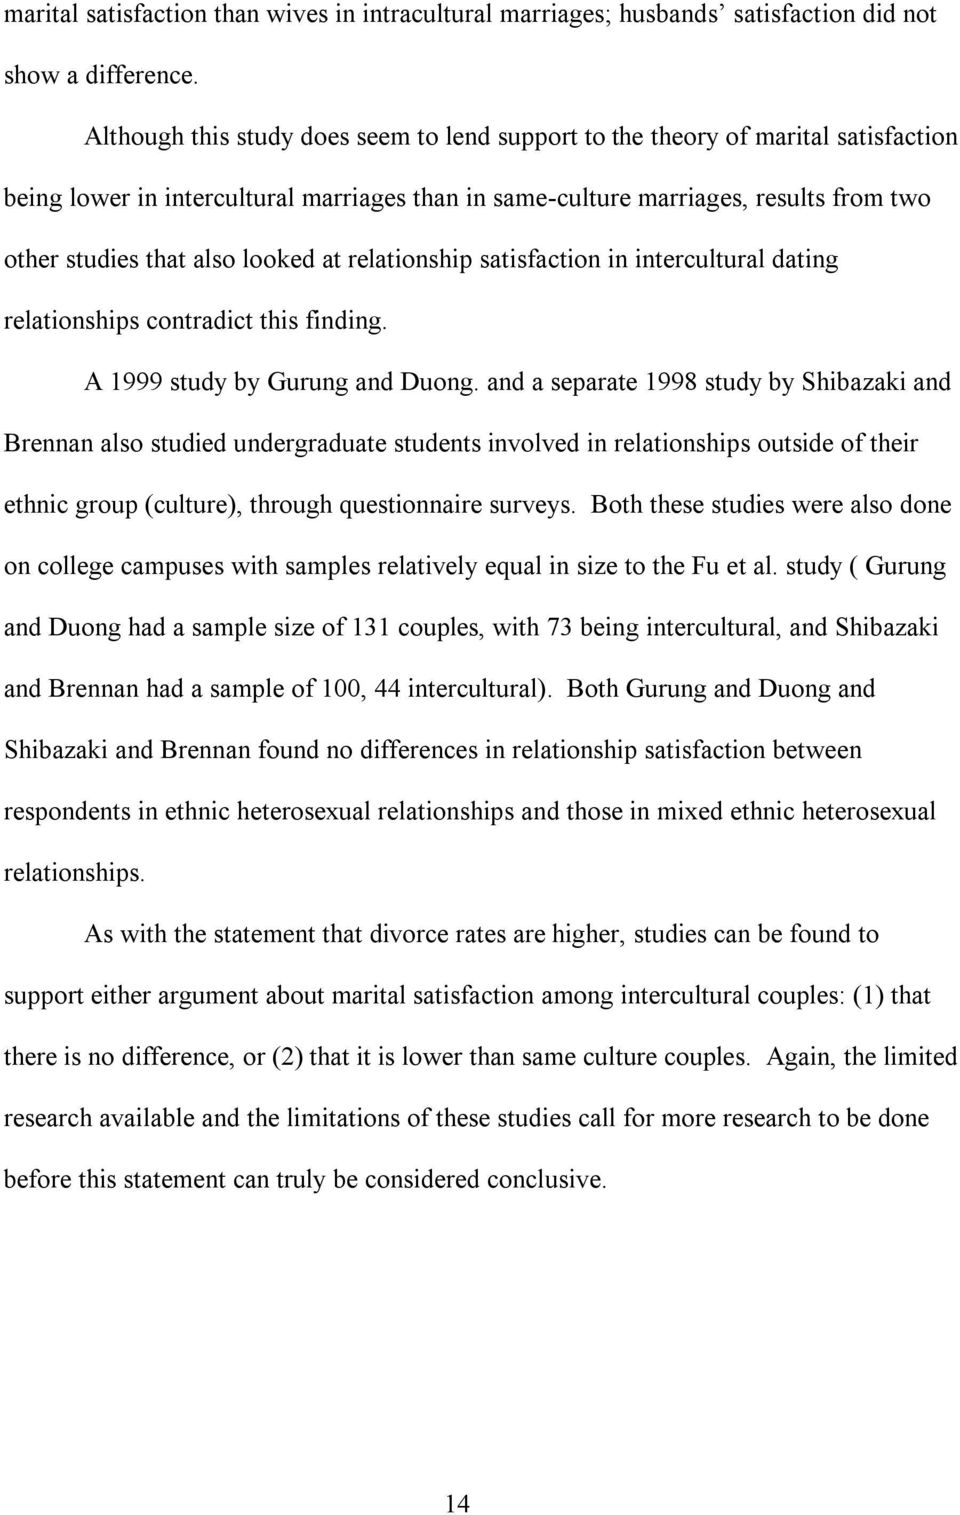 looked at relationship satisfaction in intercultural dating relationships contradict this finding. A 1999 study by Gurung and Duong.